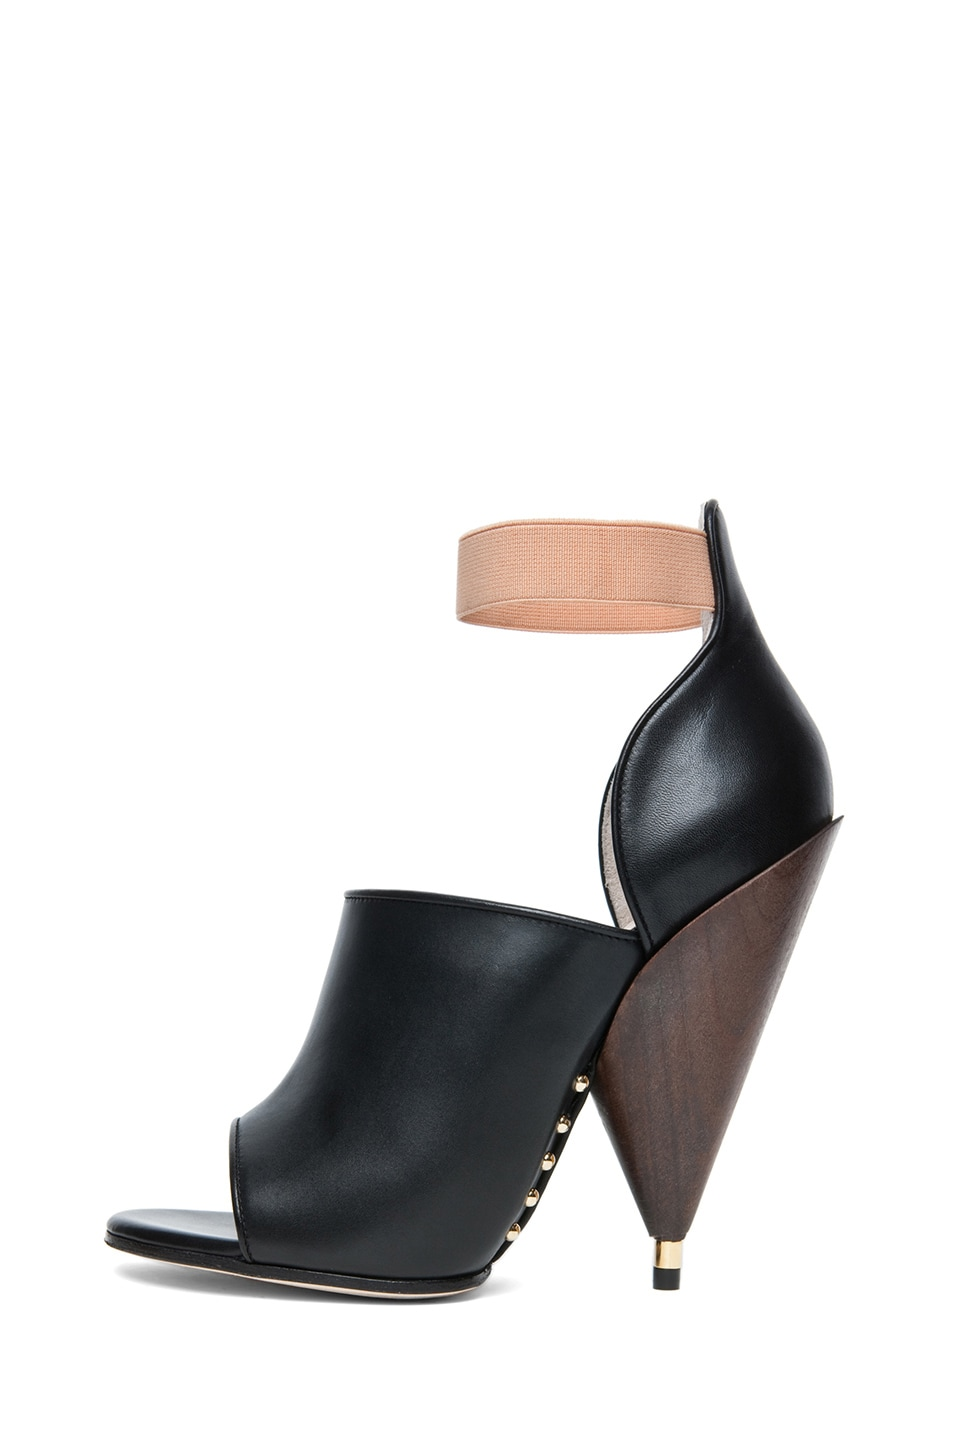 Image 1 of GIVENCHY Dunka Calfskin Leather Podium Heel in Black